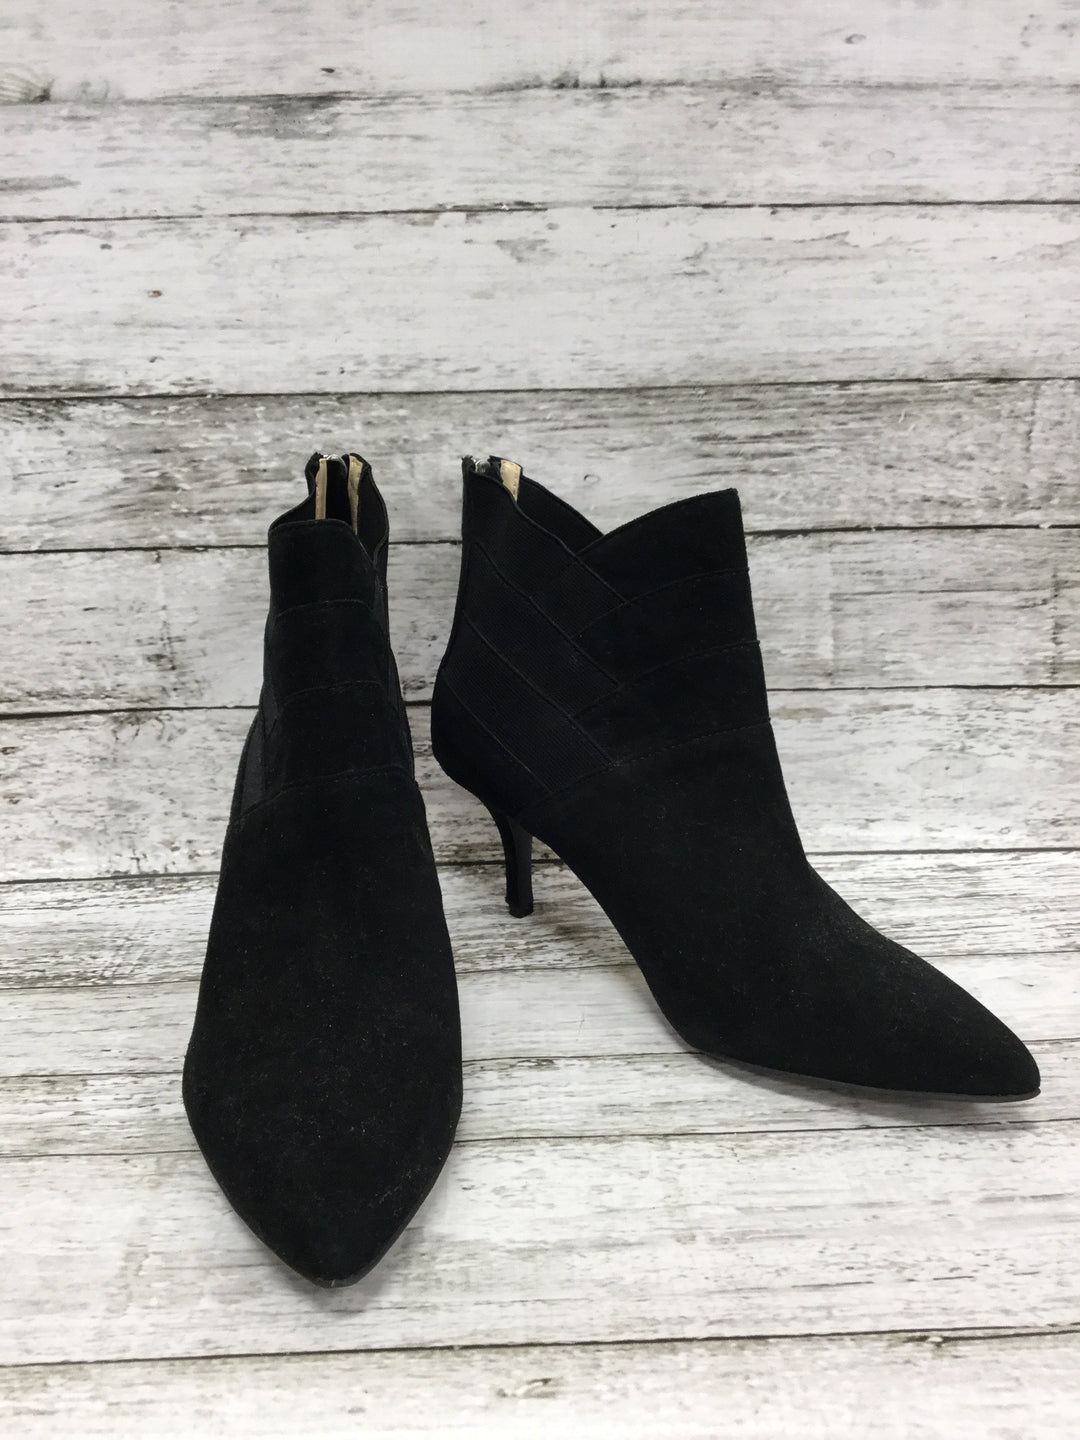 Primary Photo - brand: adrienne vittadini , style: boots ankle , color: black , size: 7.5 , sku: 127-3371-41625, , suede booties with diagonal elastic and suede detail!